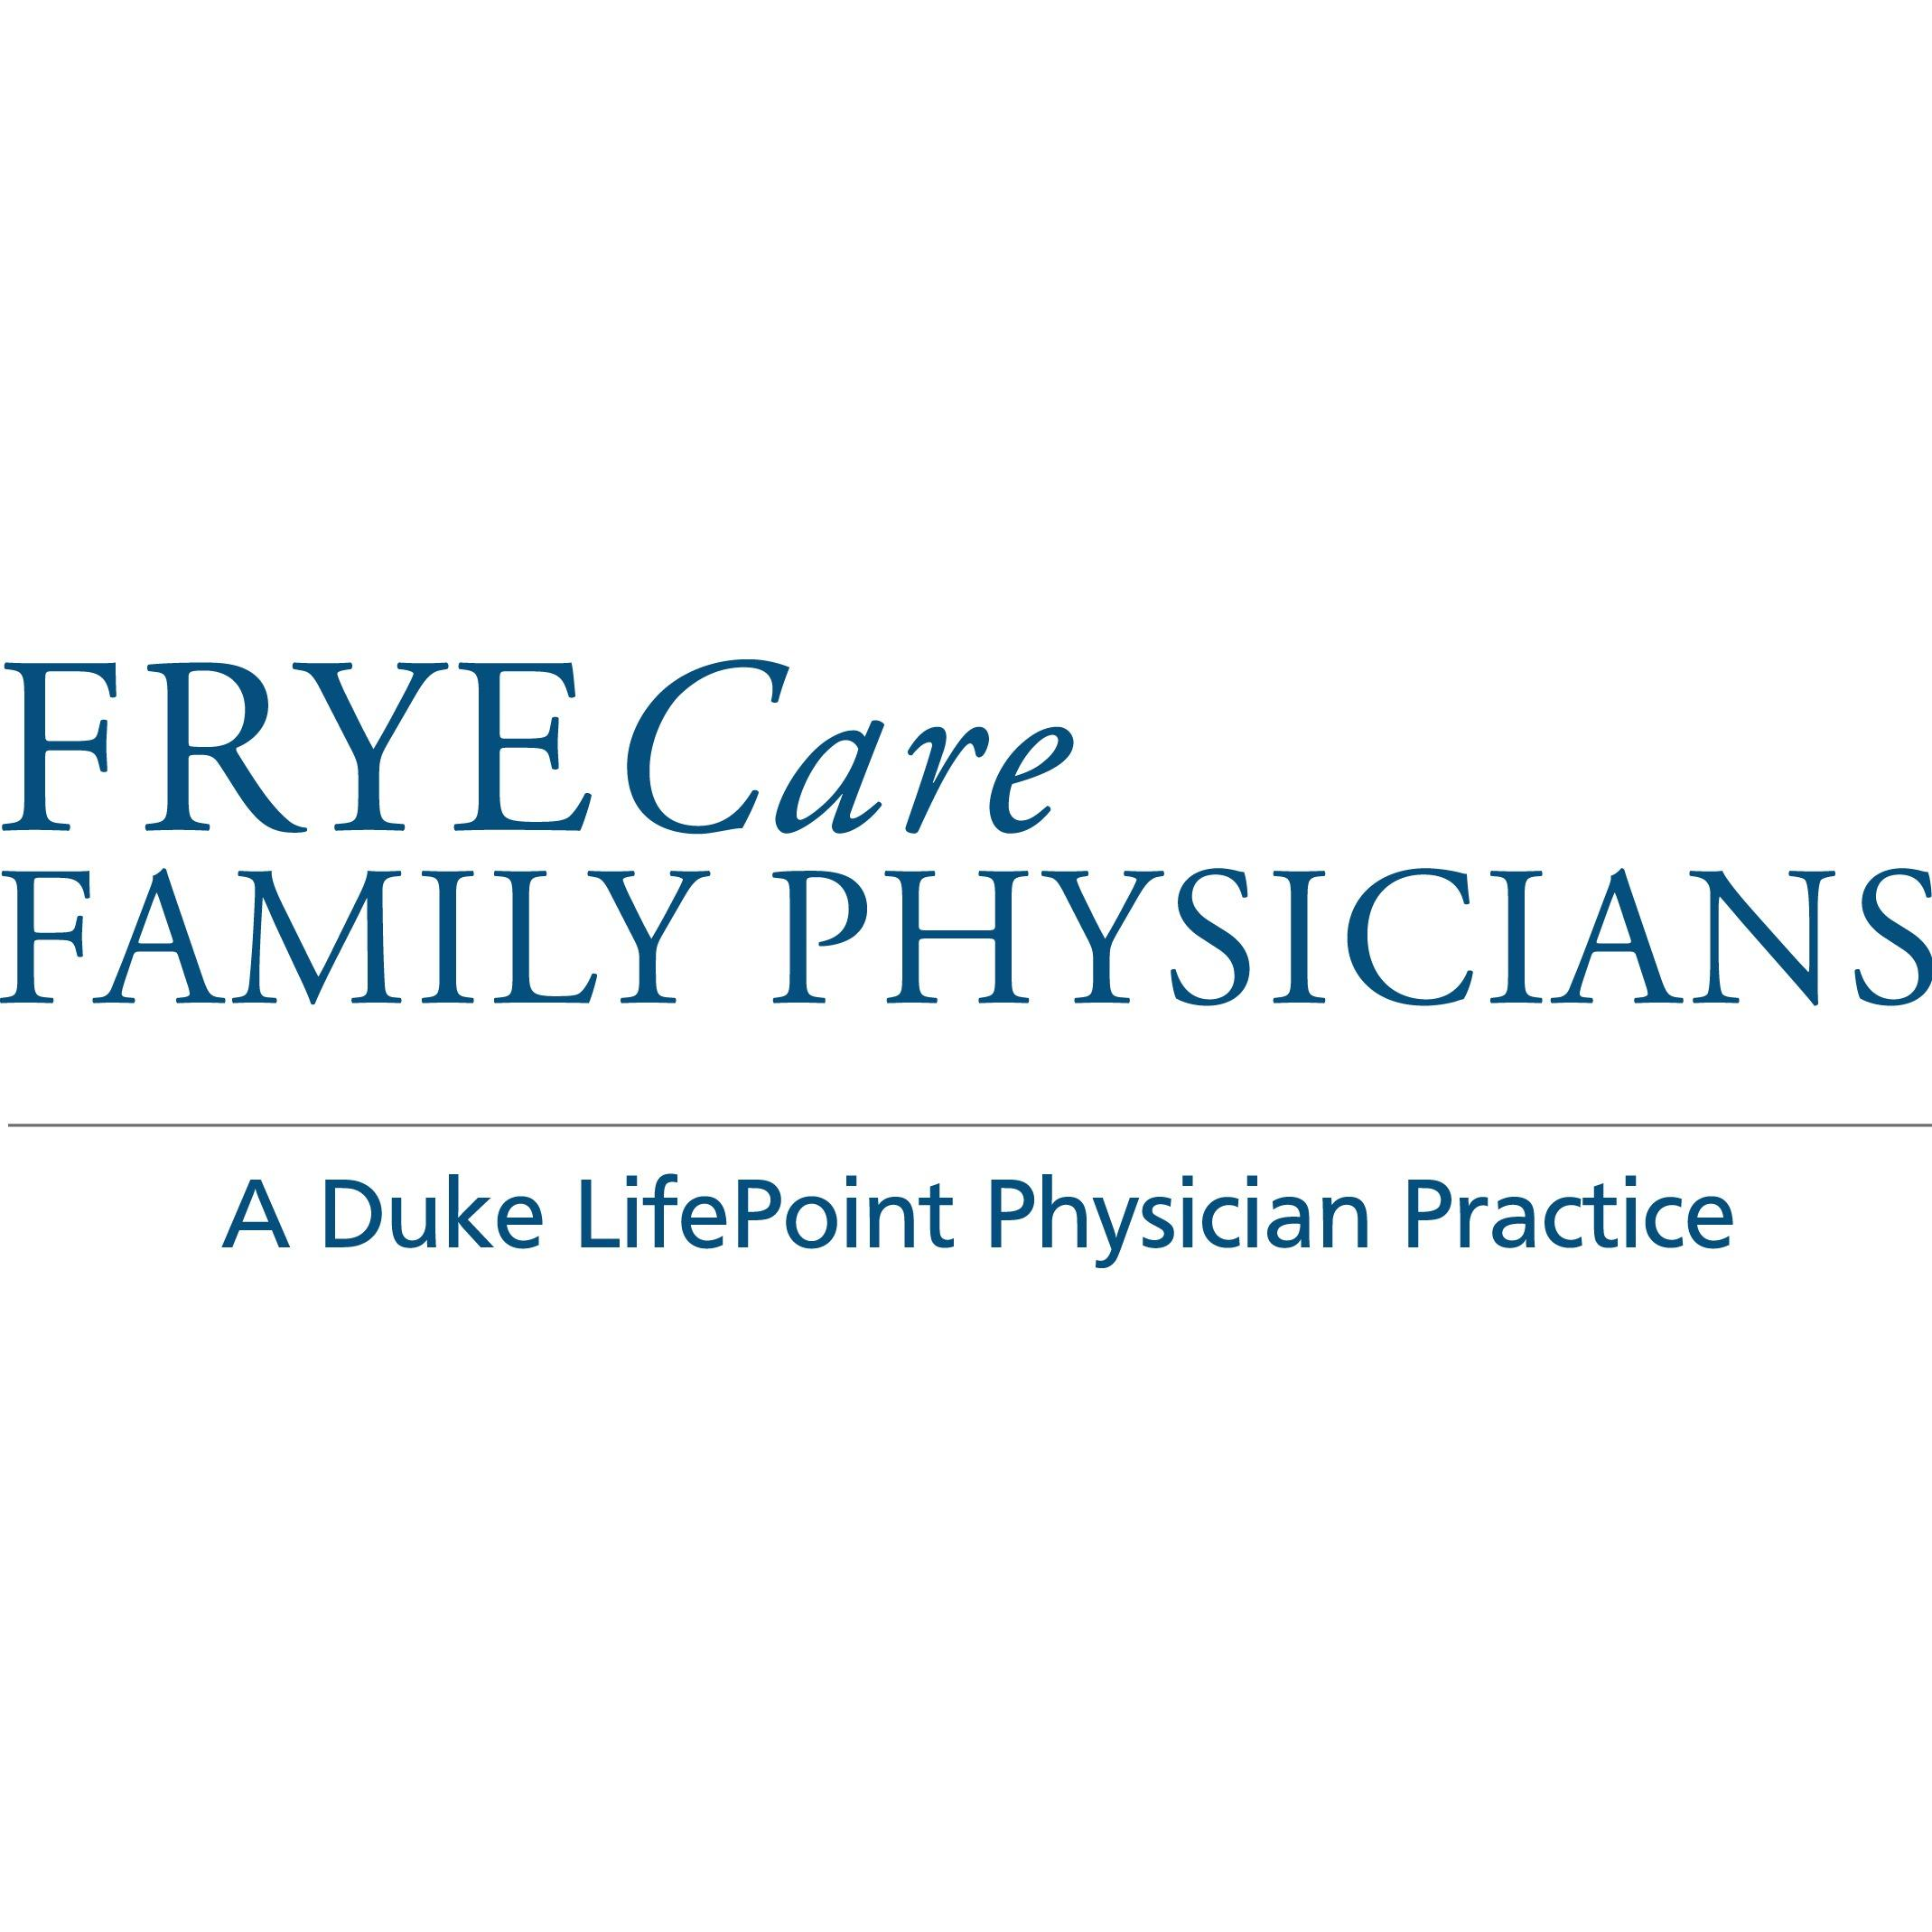 FryeCare Family Physicians